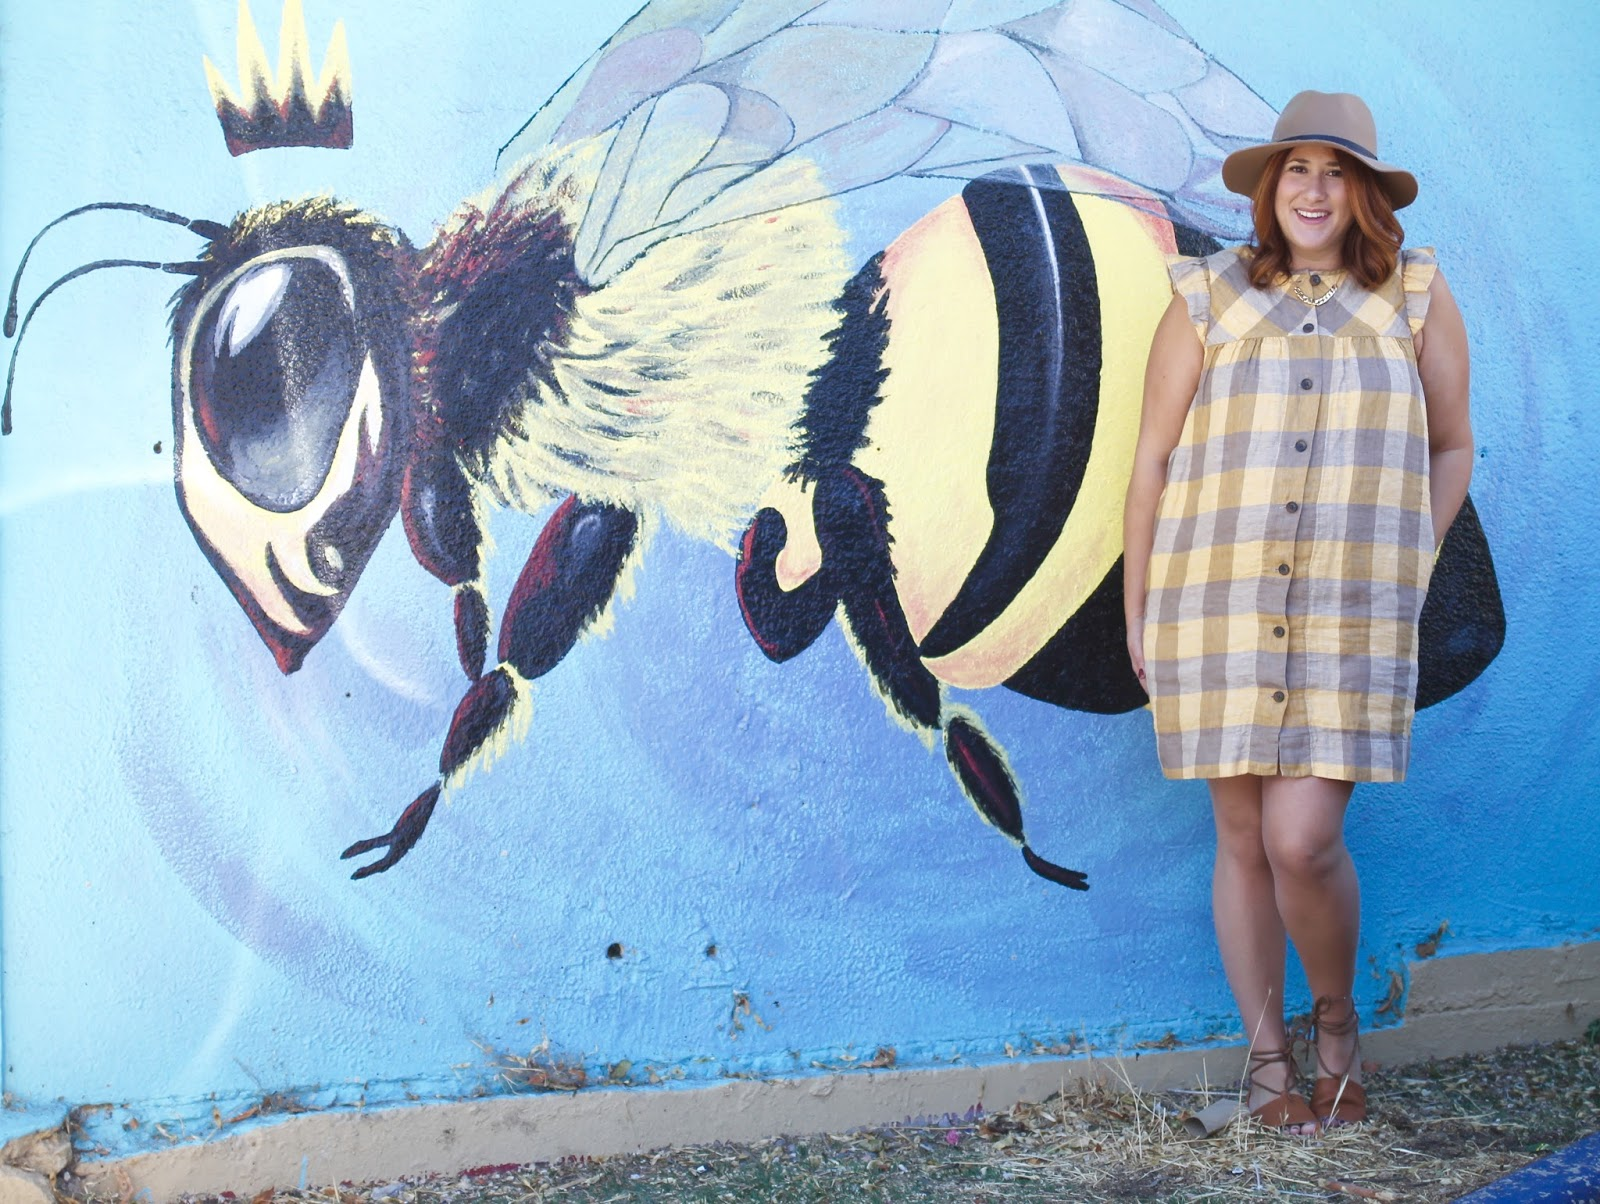 wool hat, pregnancy style, maternity style, aritzia searlas dress, mural salt lake city, park lane Jewelry